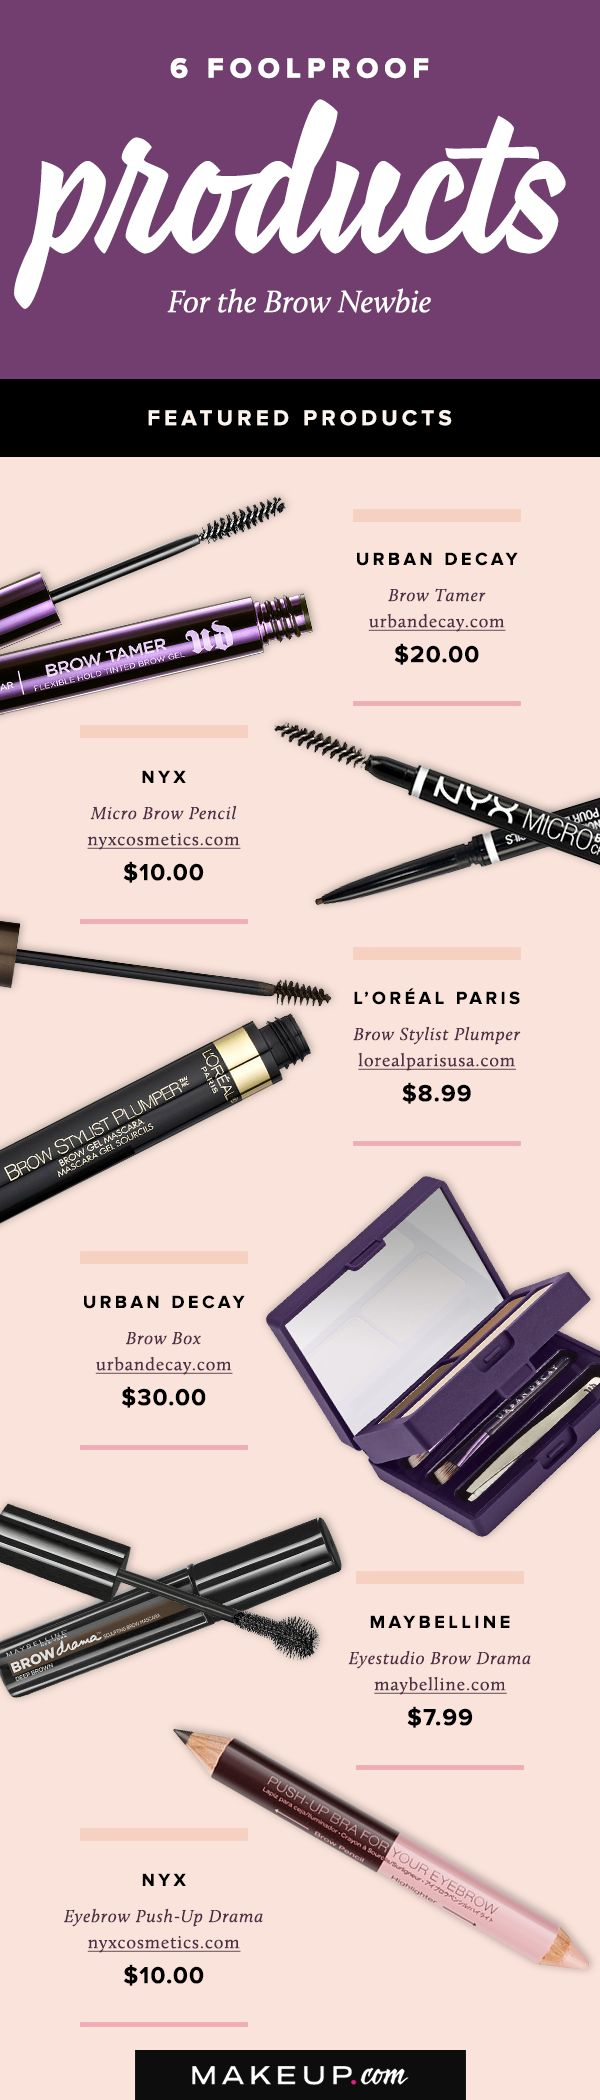 Brows are a major topic of conversation in the makeup world. If you're just now starting to pay attention to your eyebrows and want them to be seriously on fleek, we'll tell you what the best eyebrow products are.